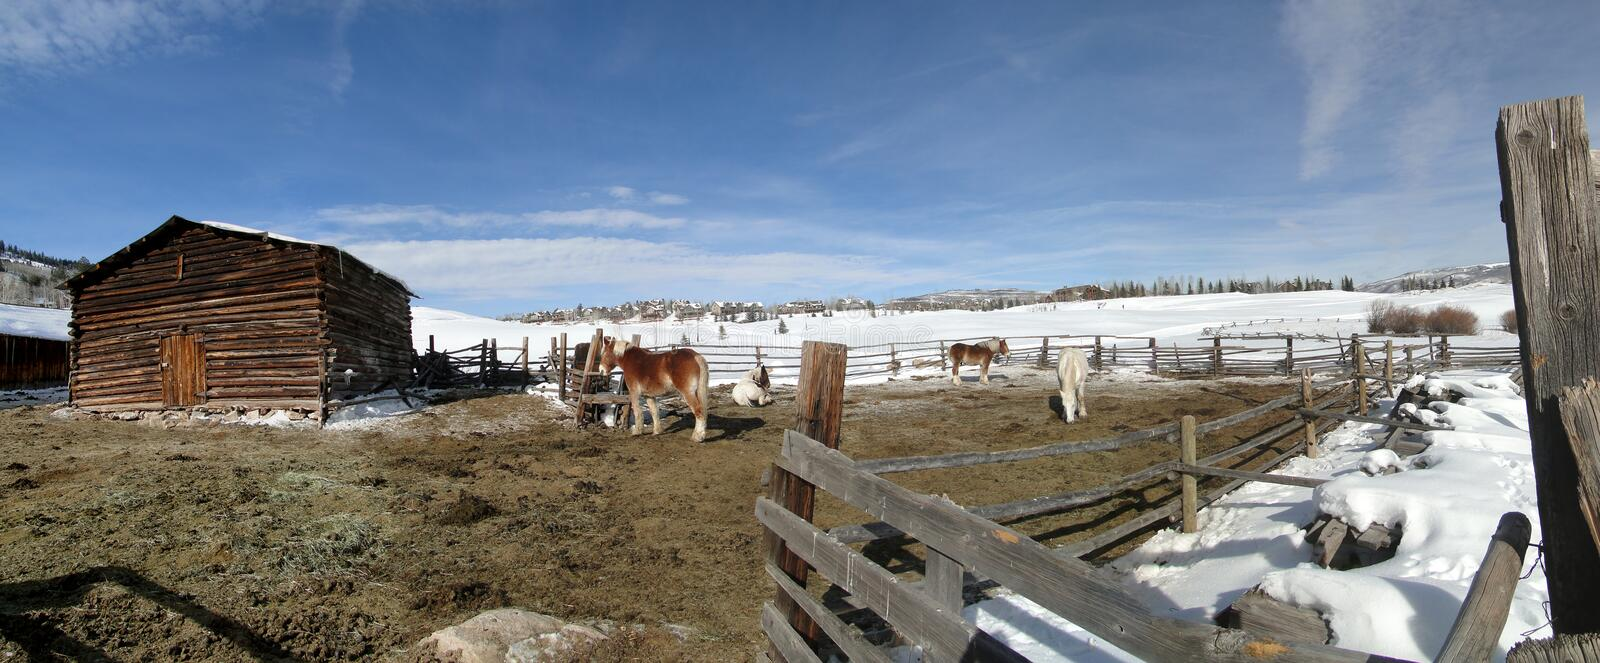 Download Draft Horses In Stable Yard Stock Photo - Image of west, cold: 12581770